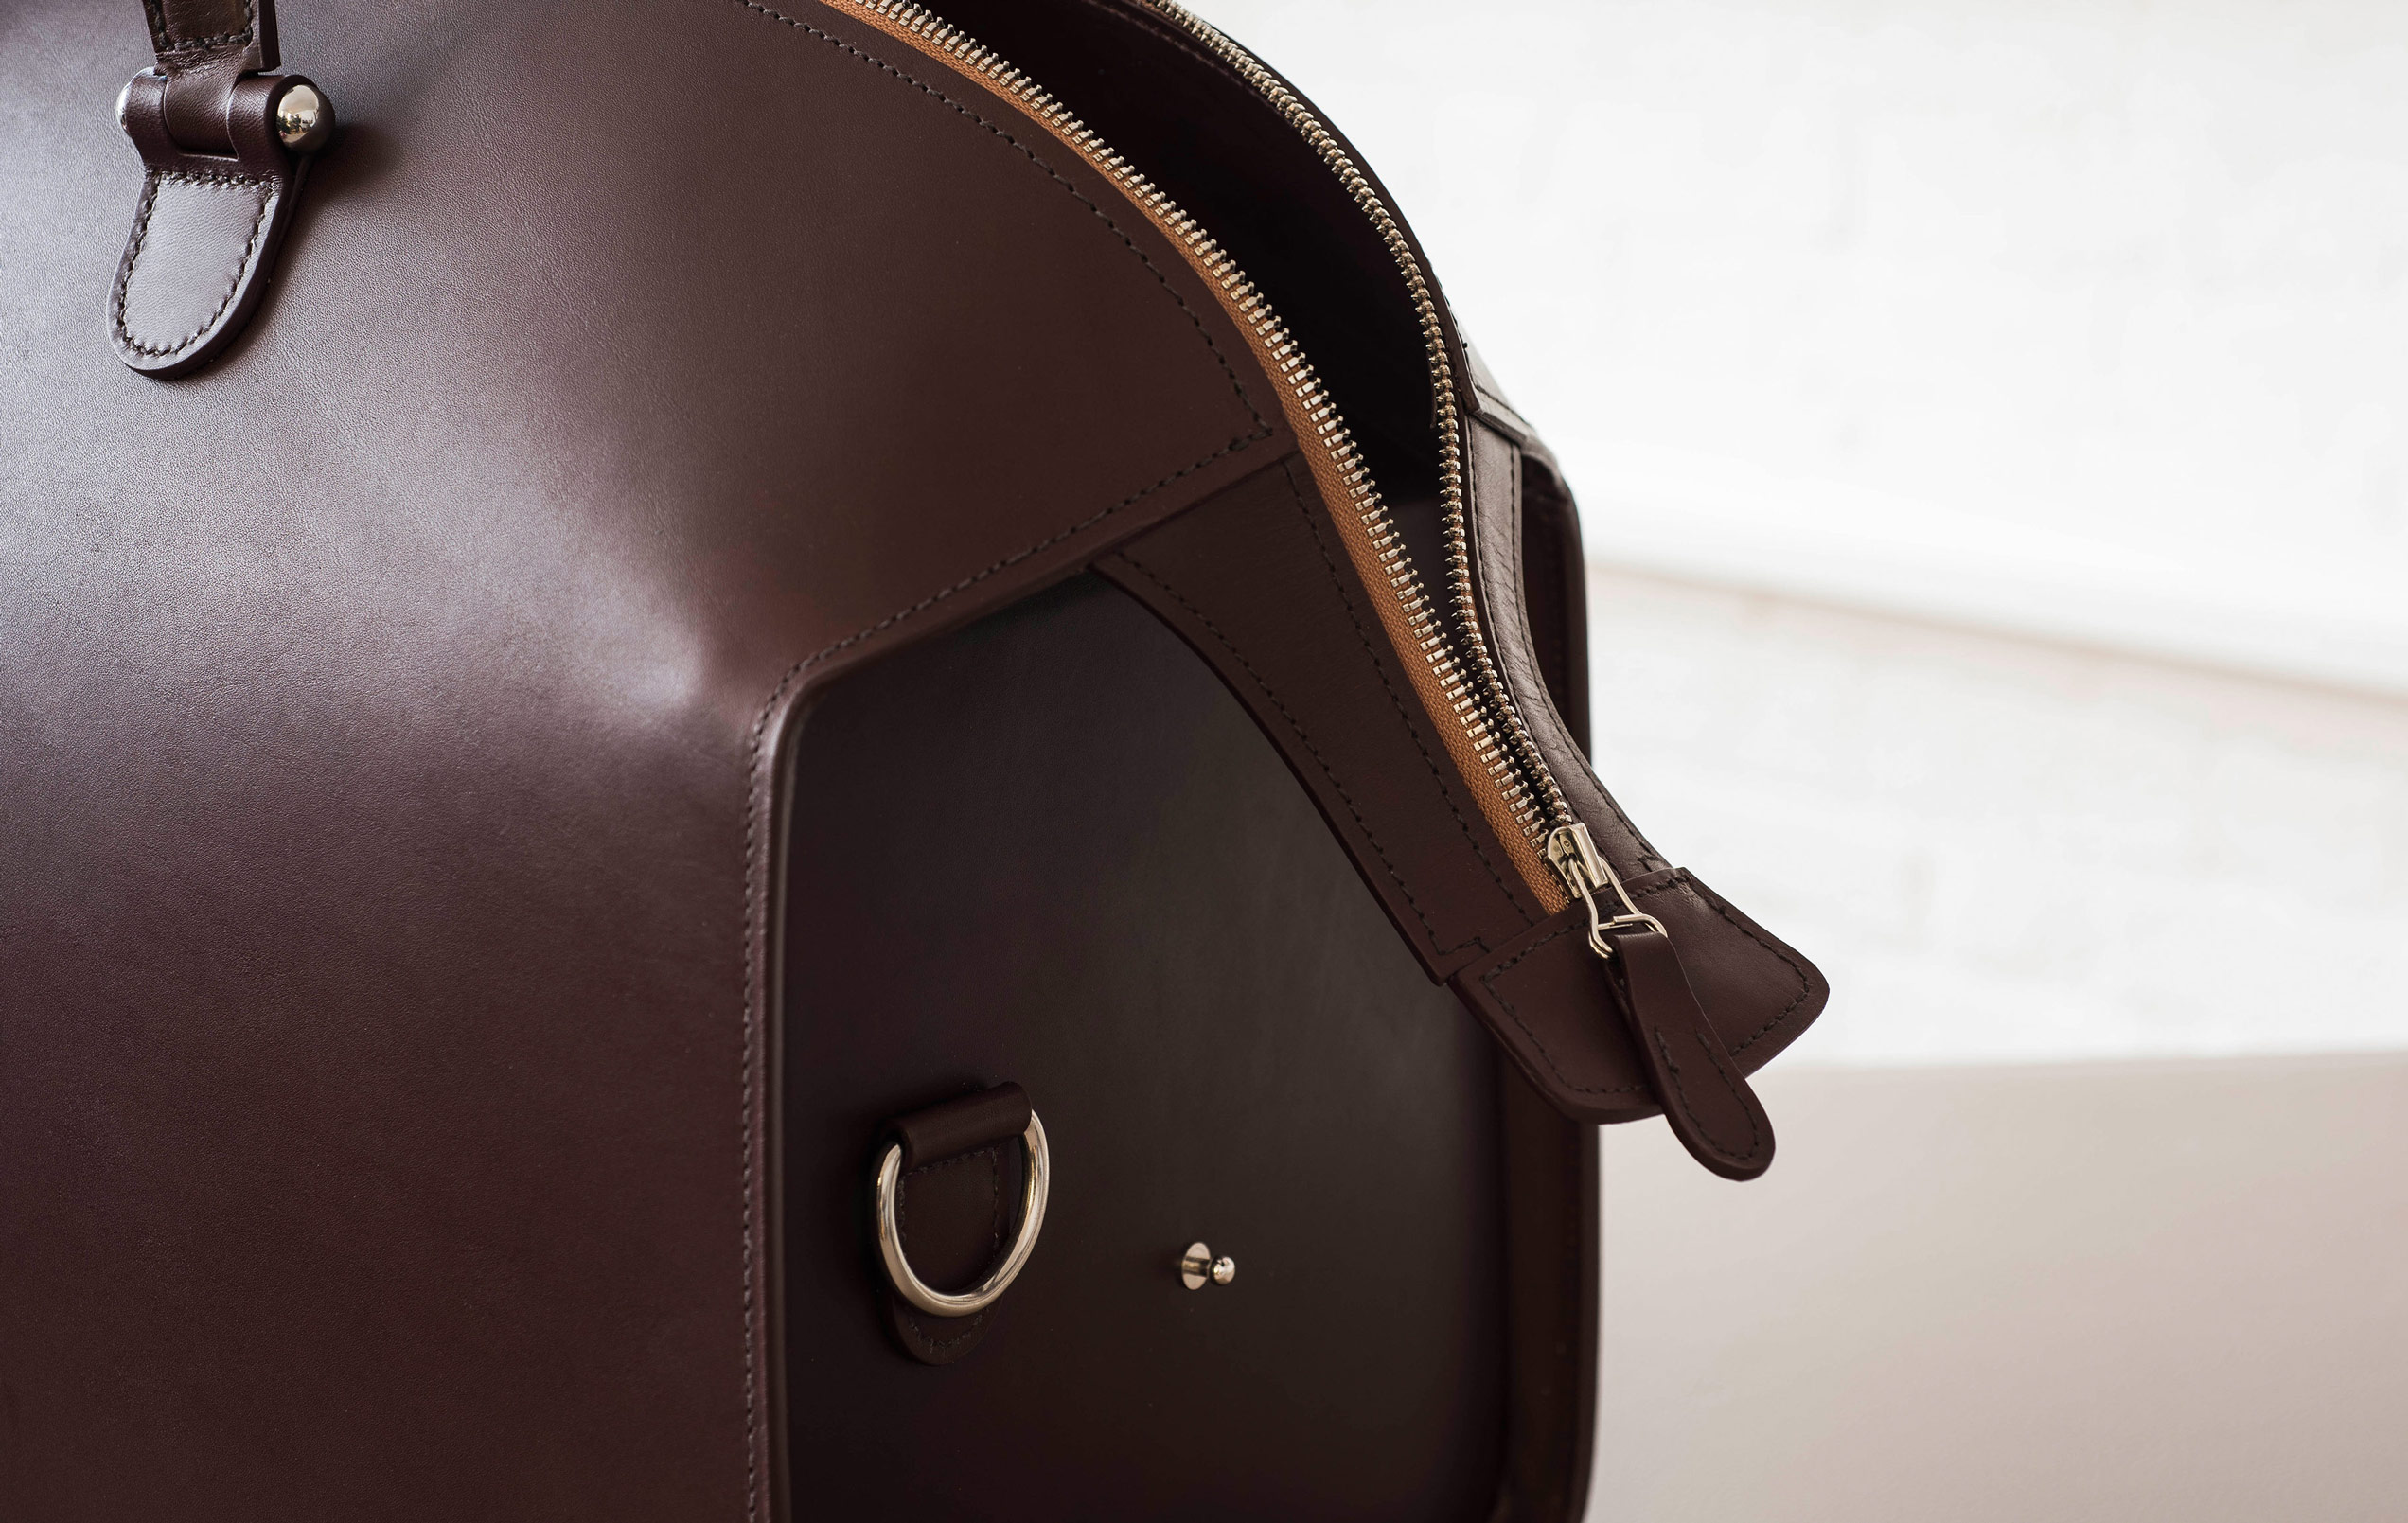 Focusing on the padded, hand-stitched zip and the soft texture of the leather flowing over the bag.